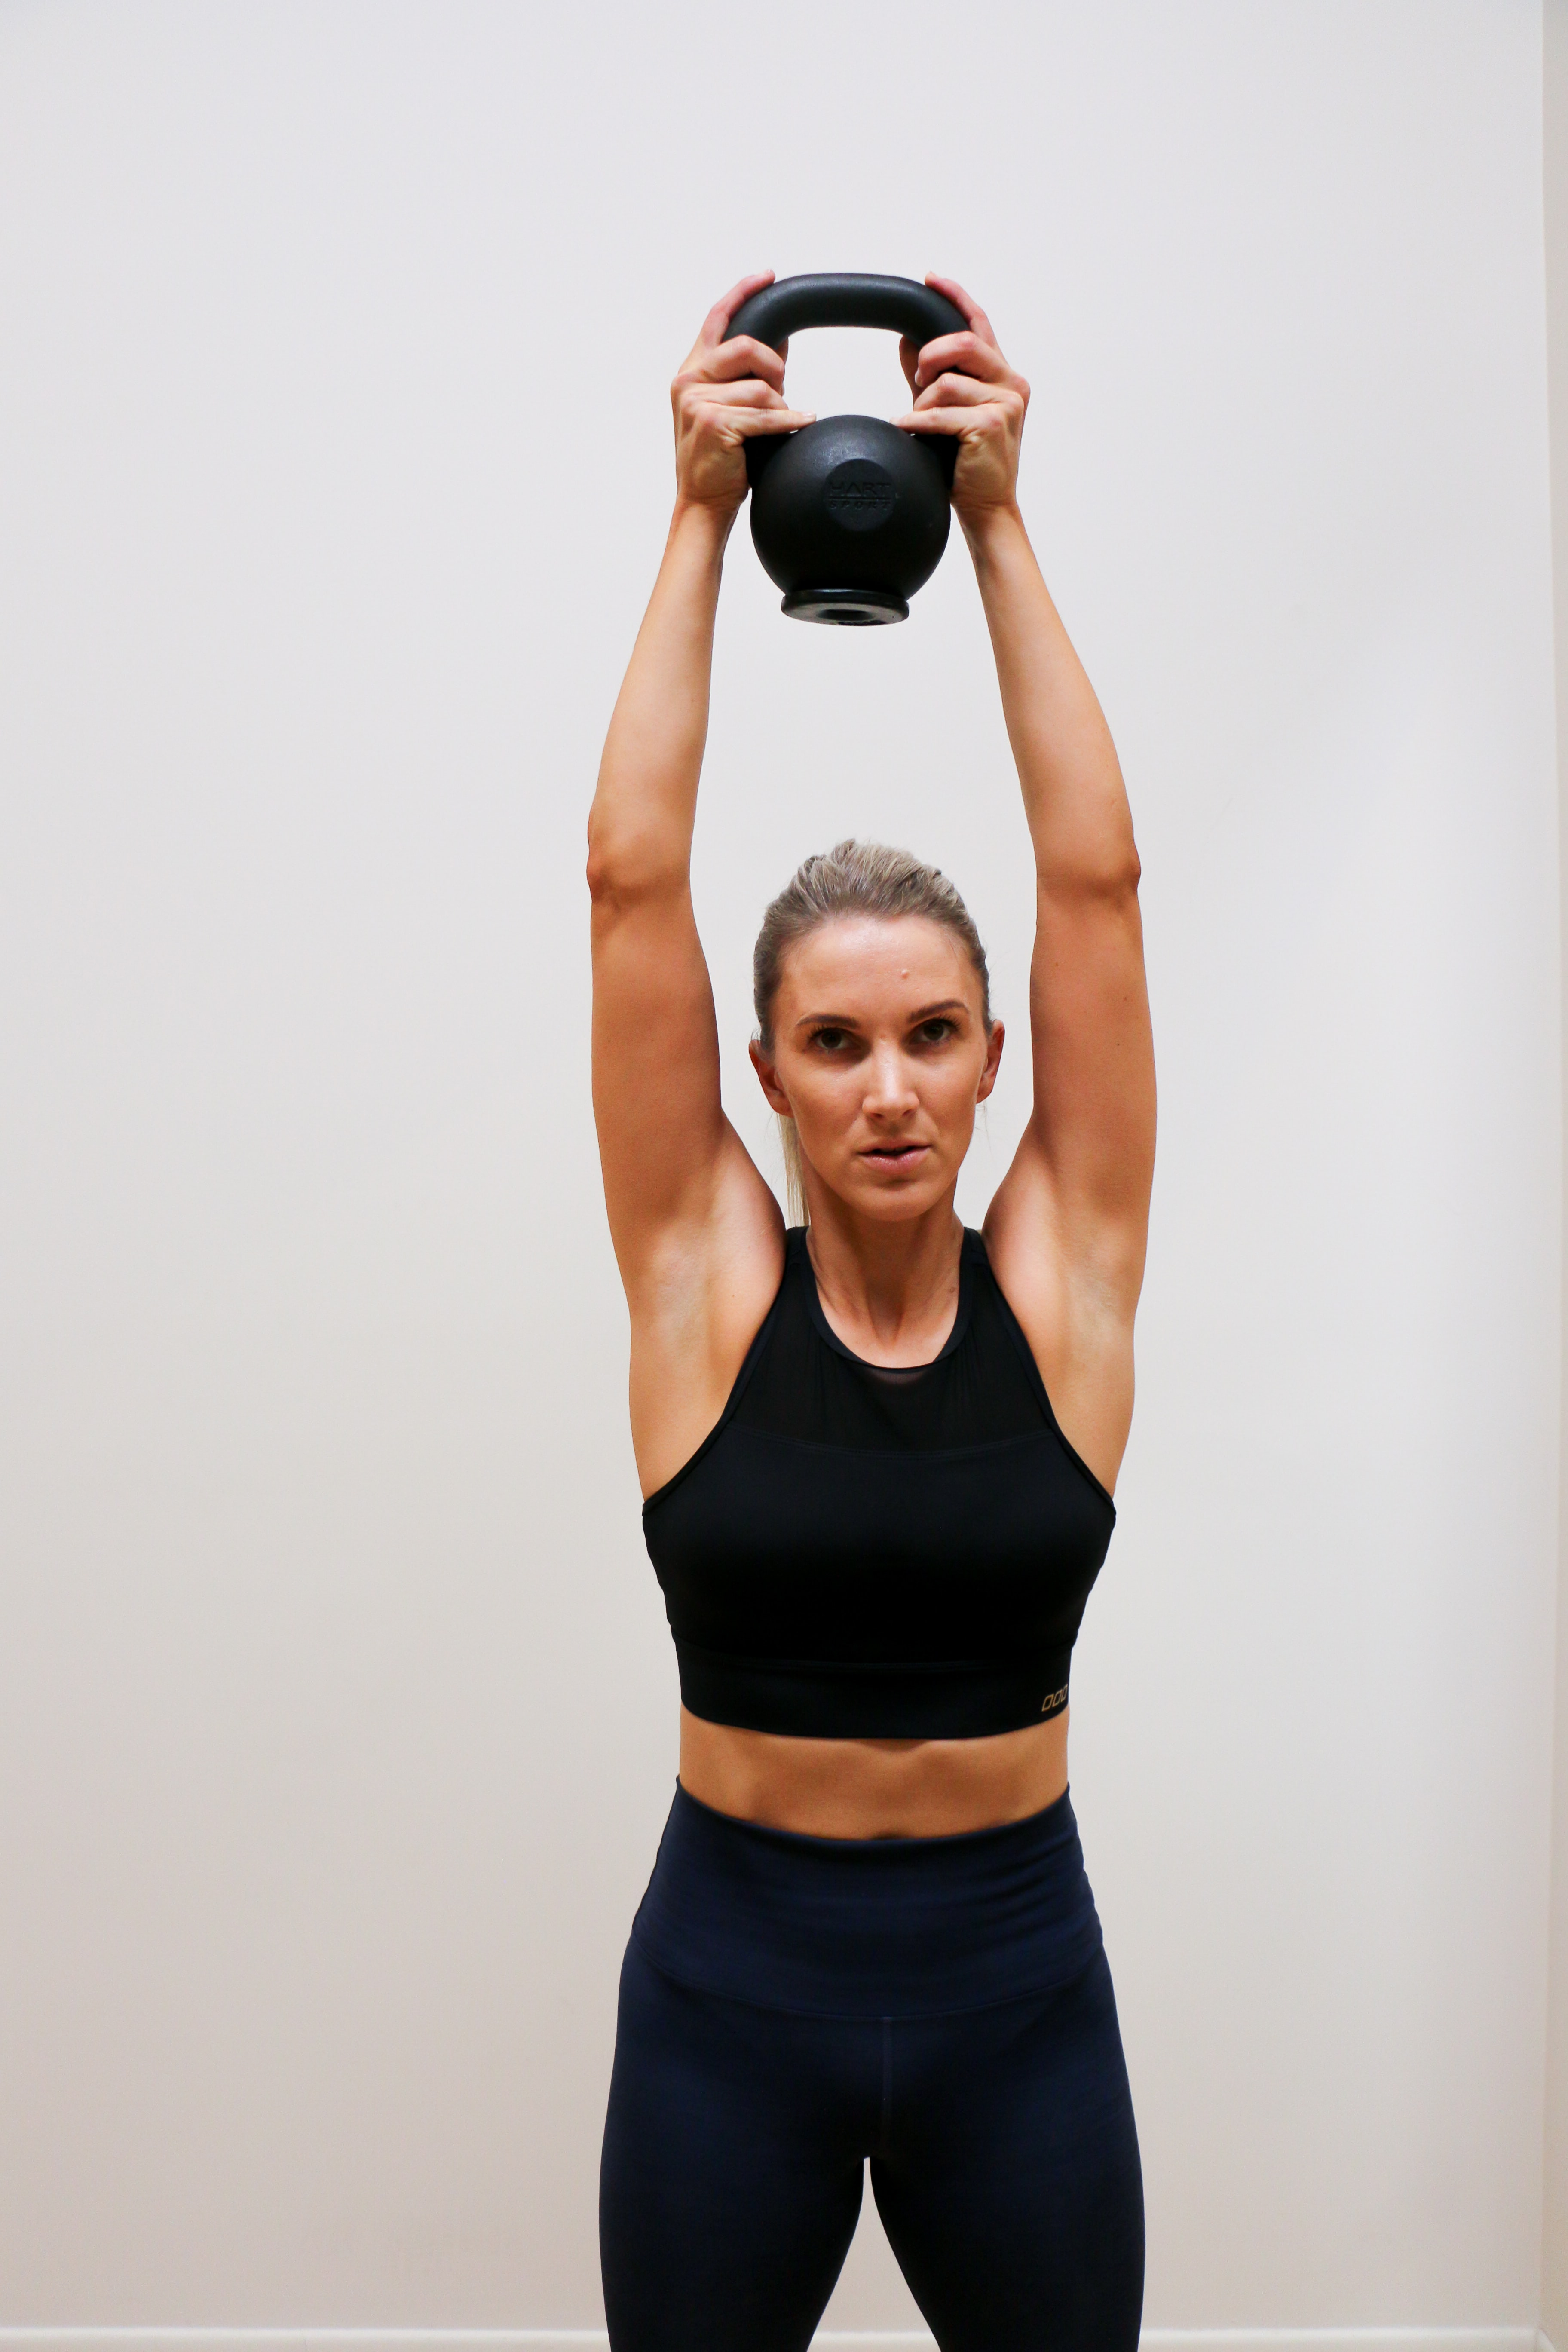 woman holding kettle bell above her head